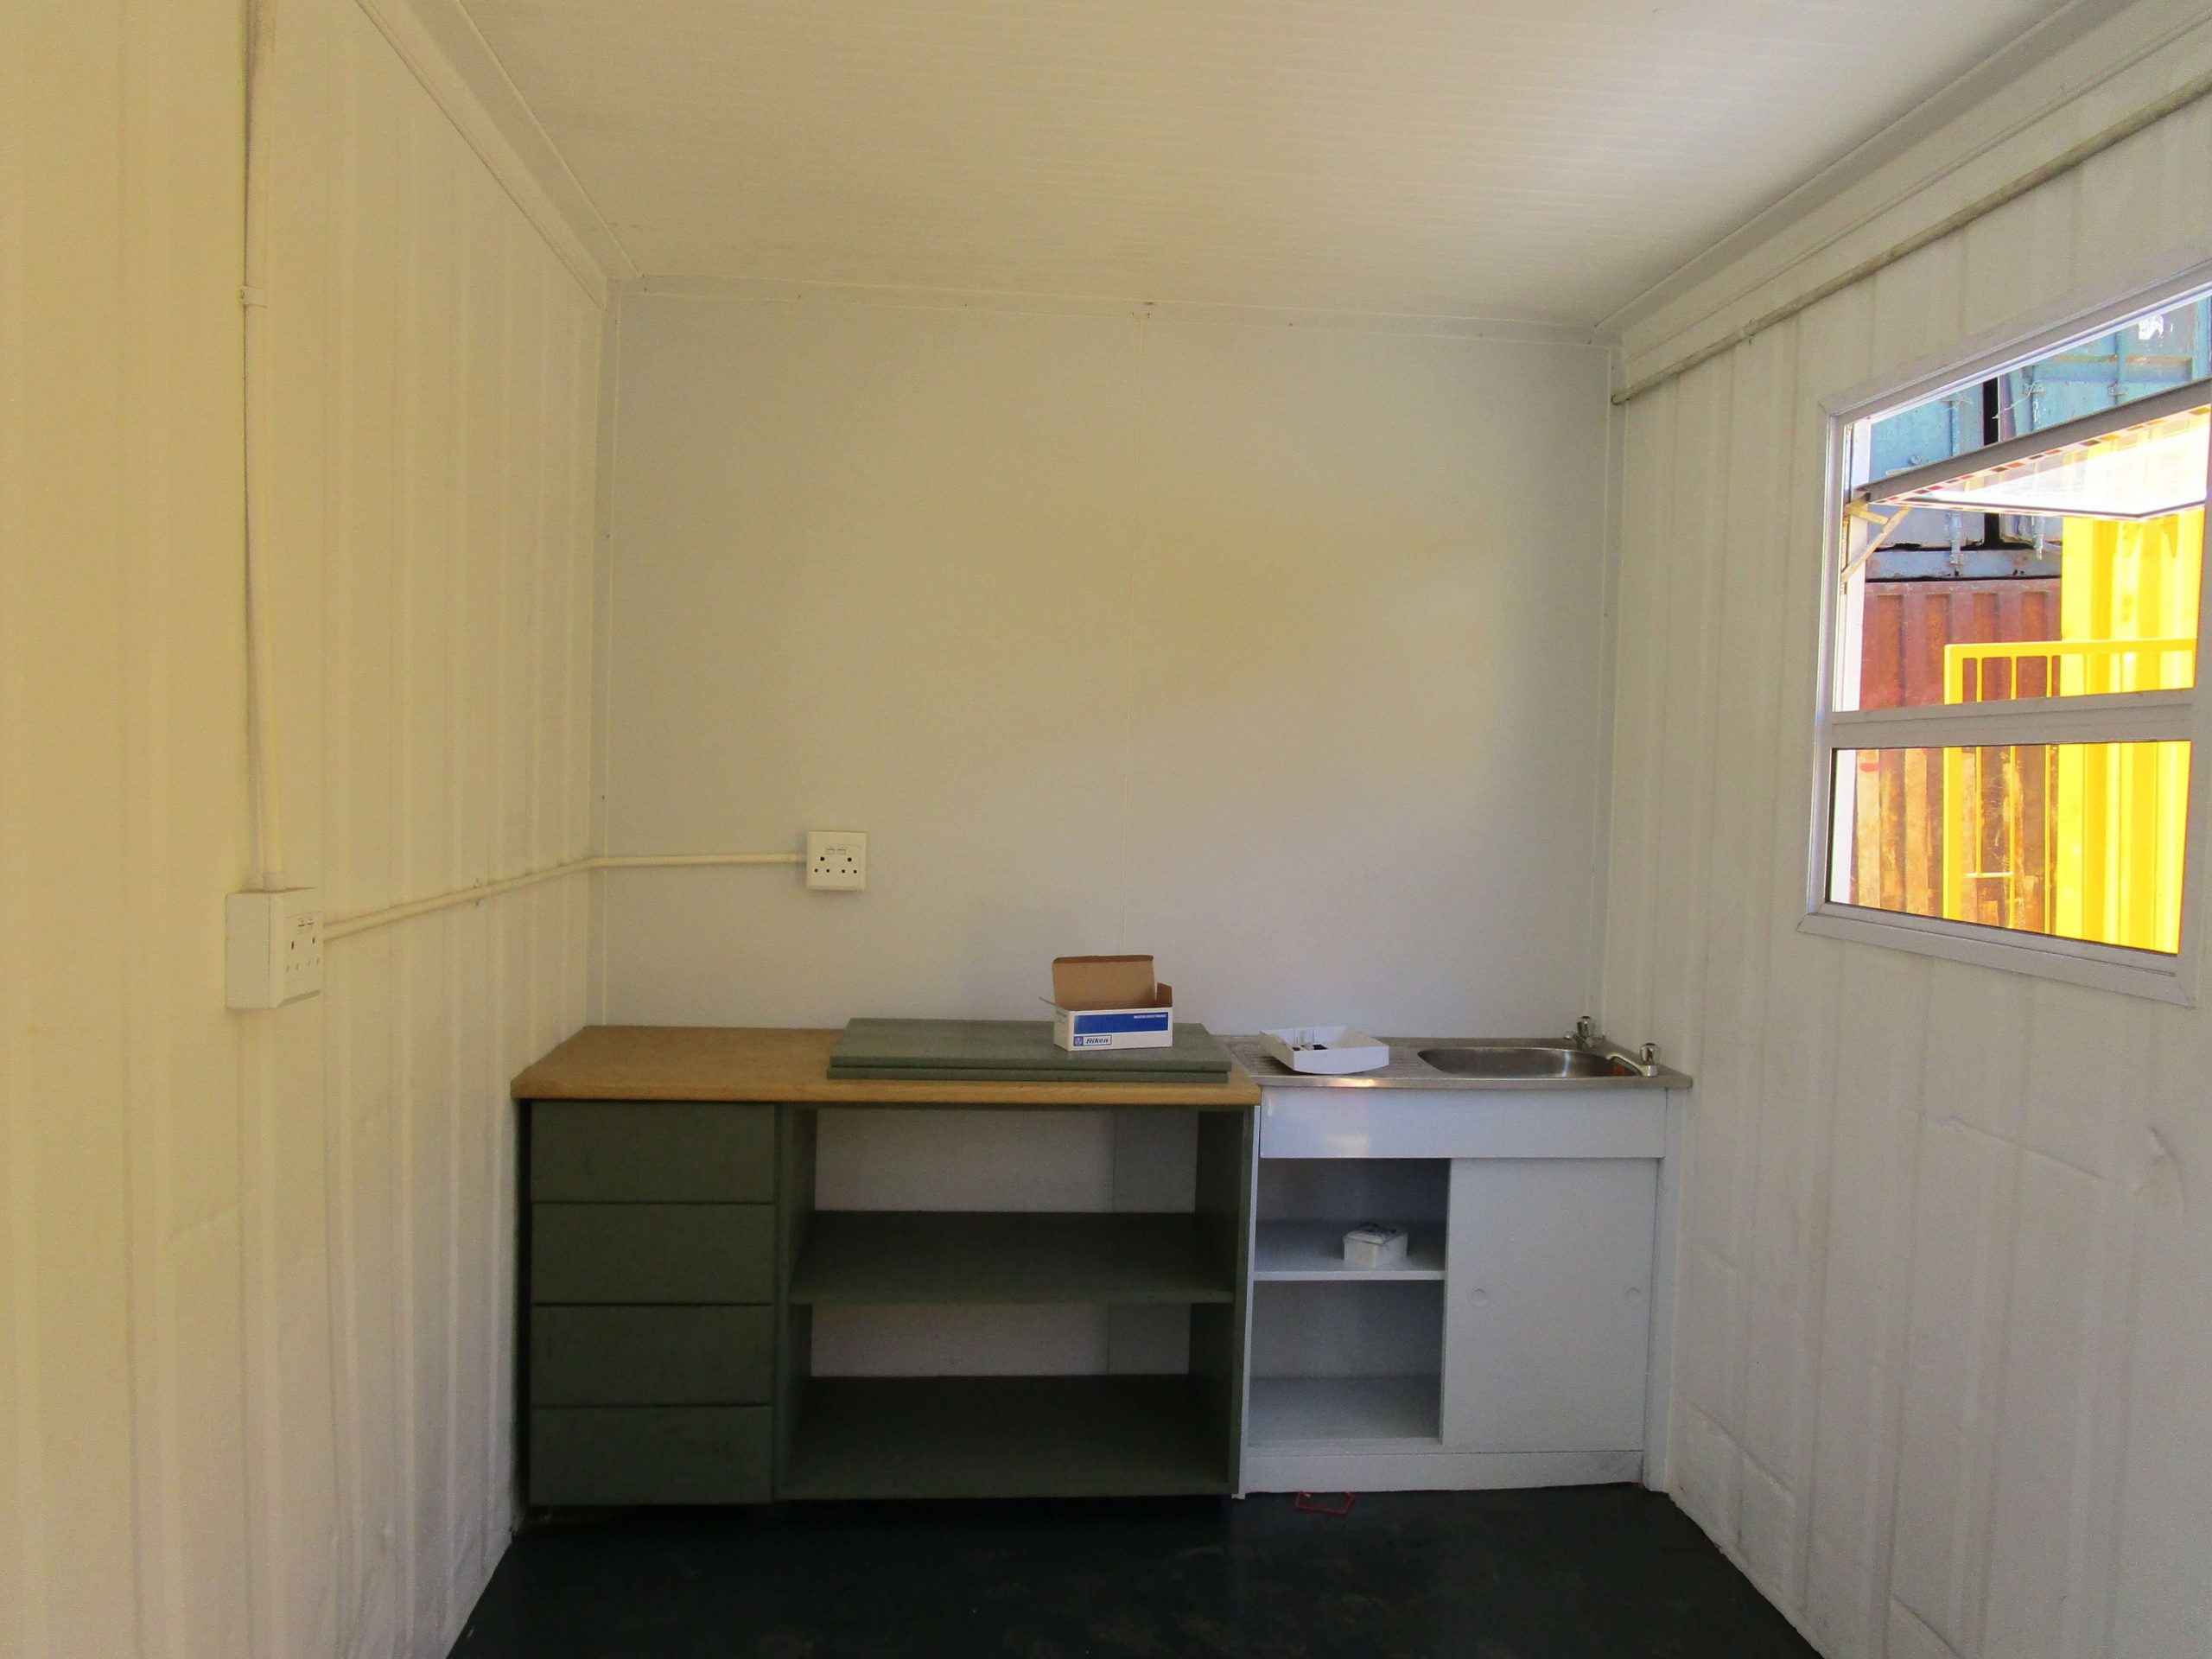 Shipping Container Ideas Internal View | Container Rental & Sales 28